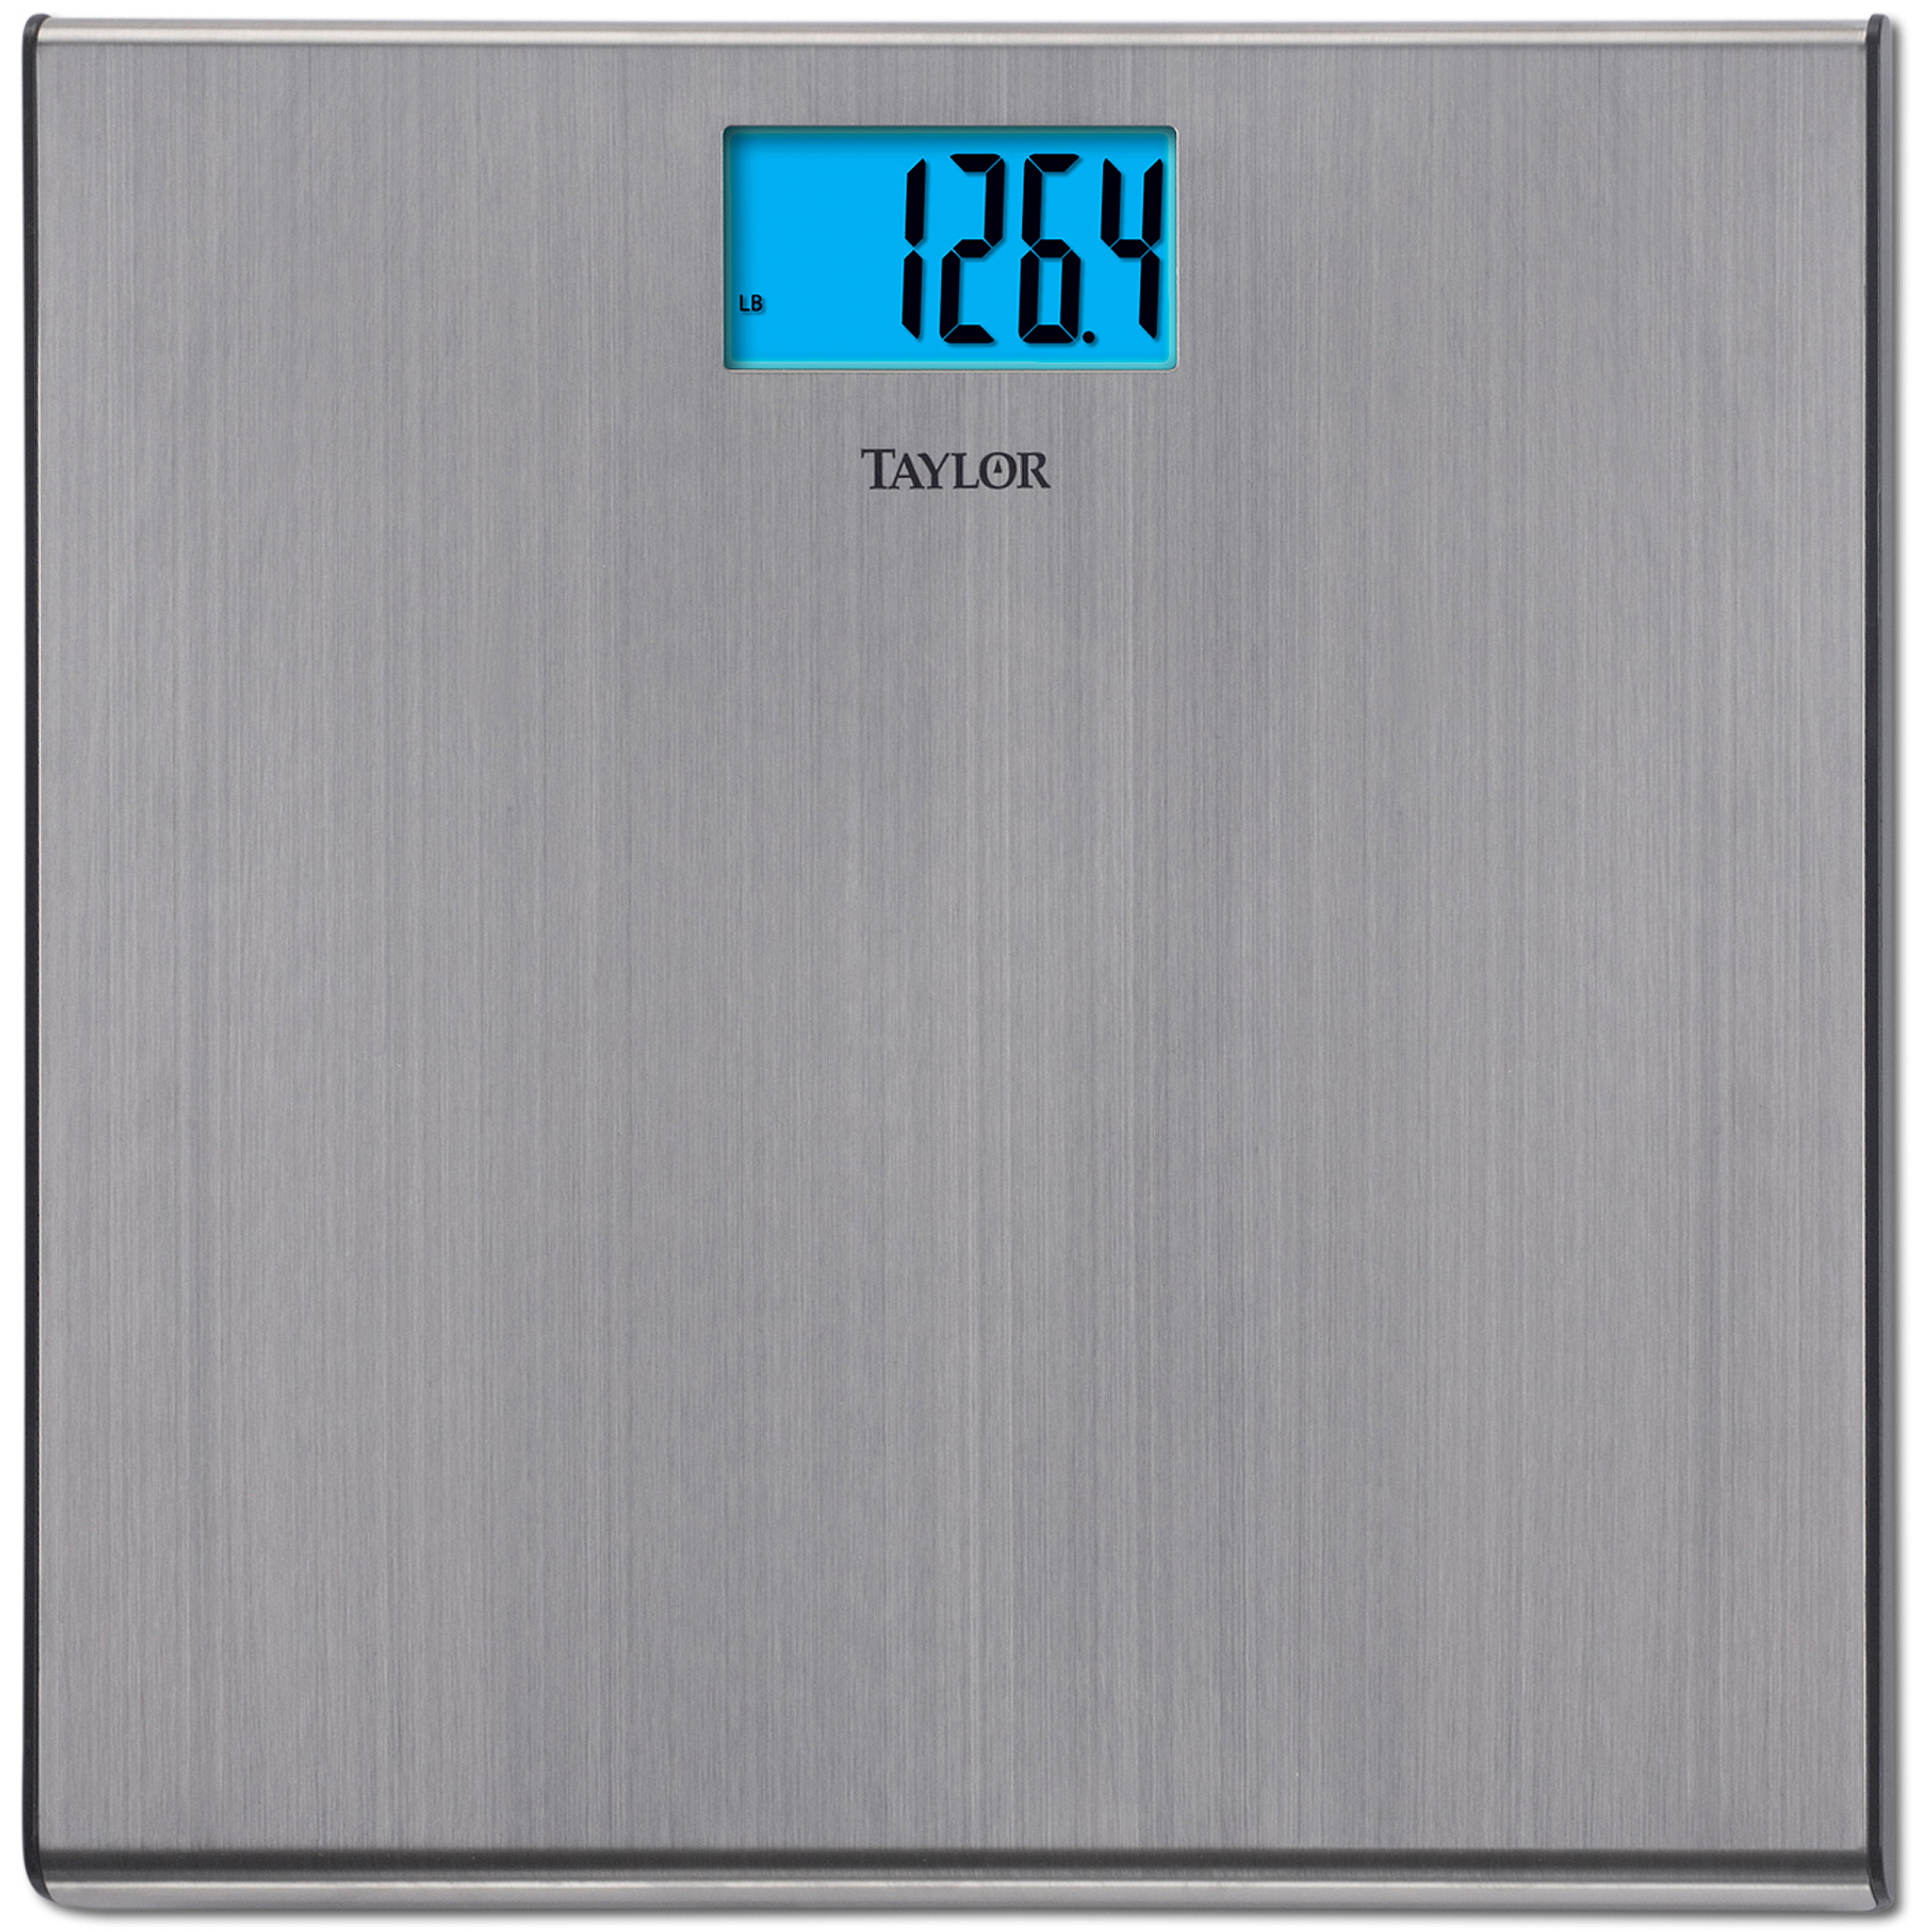 taylor 7403 brushed stainless steel ultra-slim bath scale